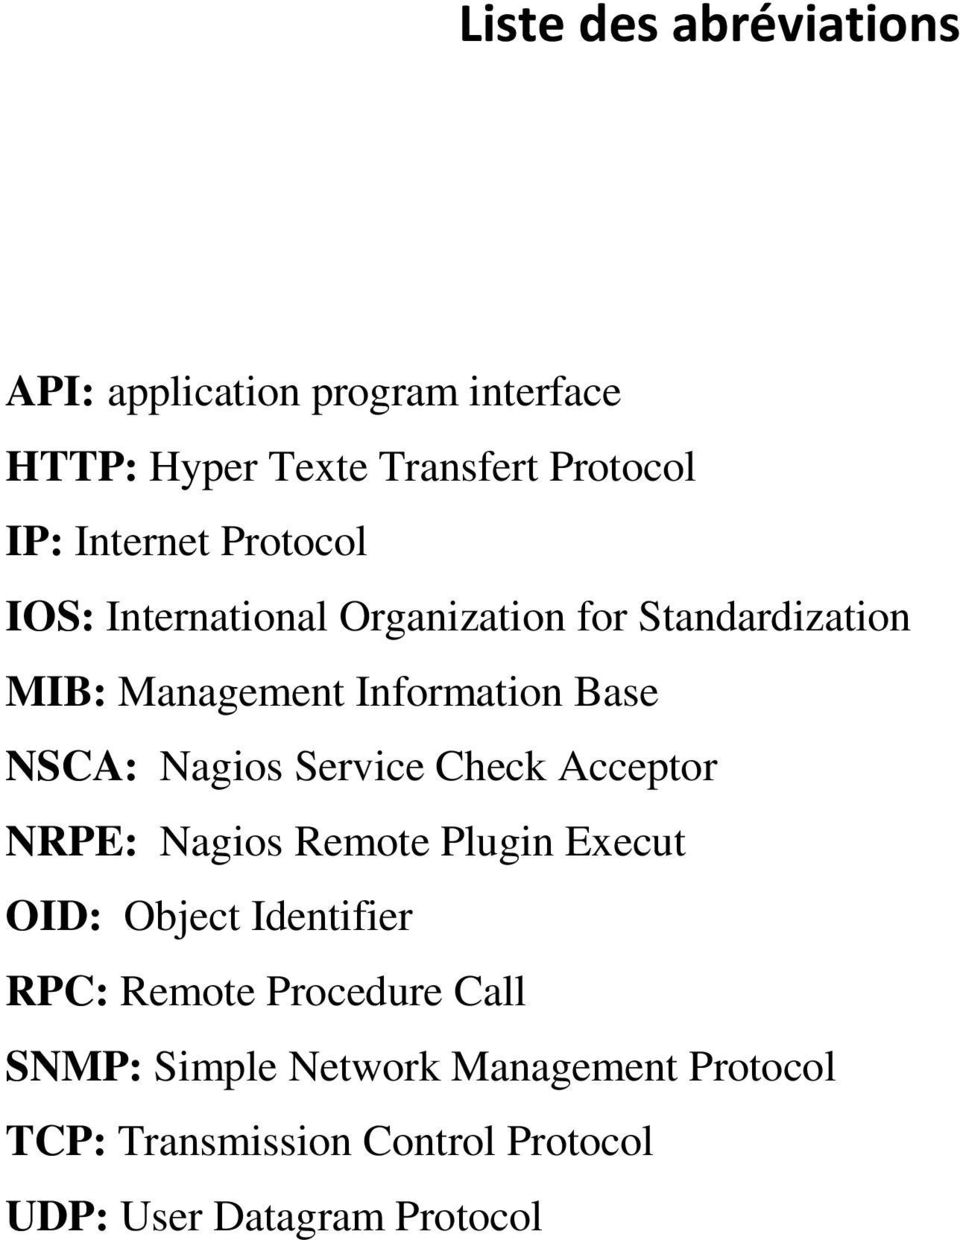 Service Check Acceptor NRPE: Nagios Remote Plugin Execut OID: Object Identifier RPC: Remote Procedure Call